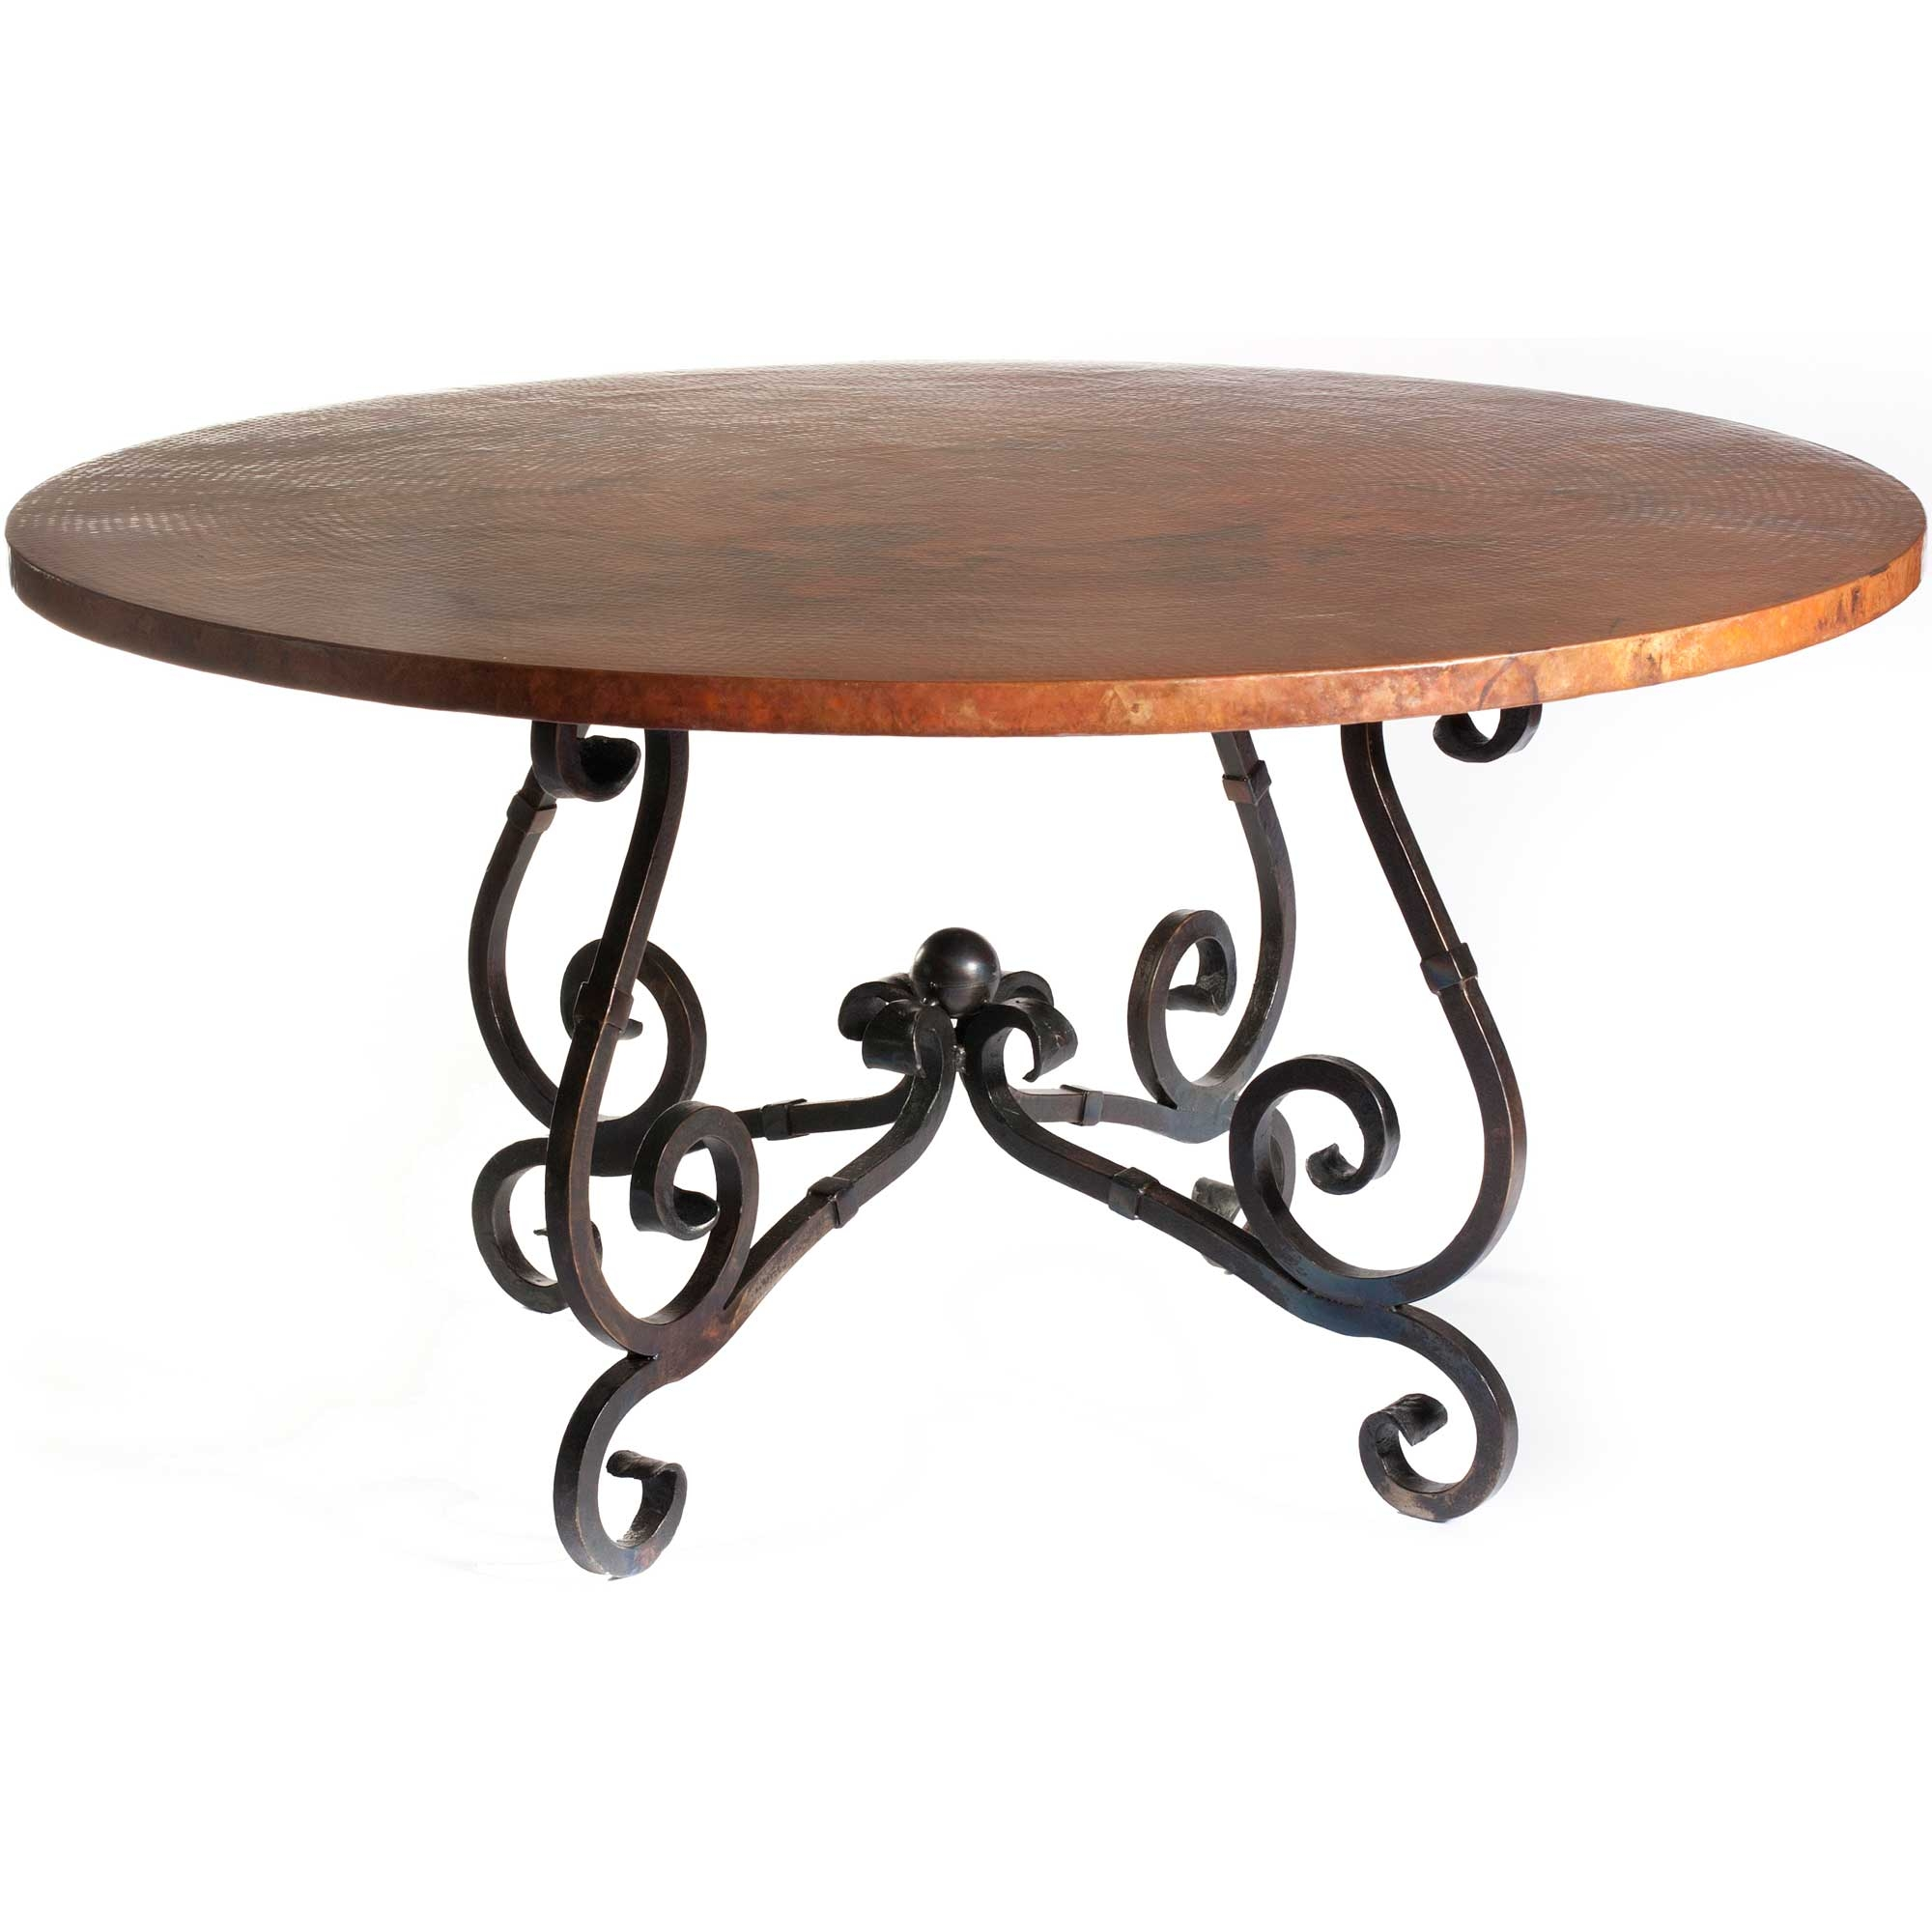 French Iron Dining Table with 48 in Round Hammered Copper Top